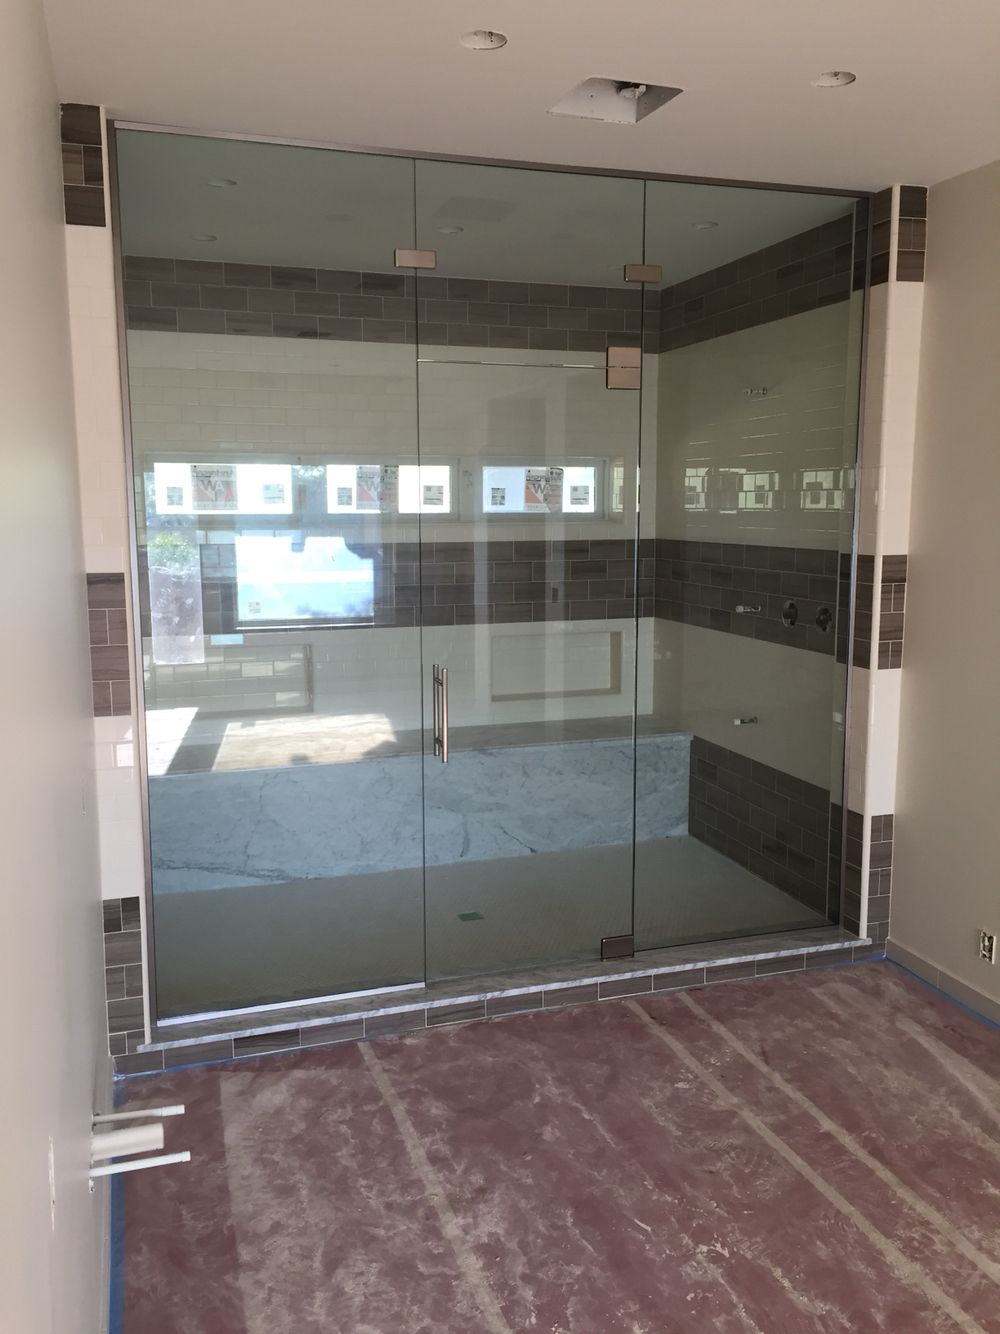 1 2 Panel Door Panel With Fixed Transom Above Chrome Hardware With Pivot Hinges Hinged Off The Transom Grand Custom Shower Doors Shower Doors 2 Panel Doors